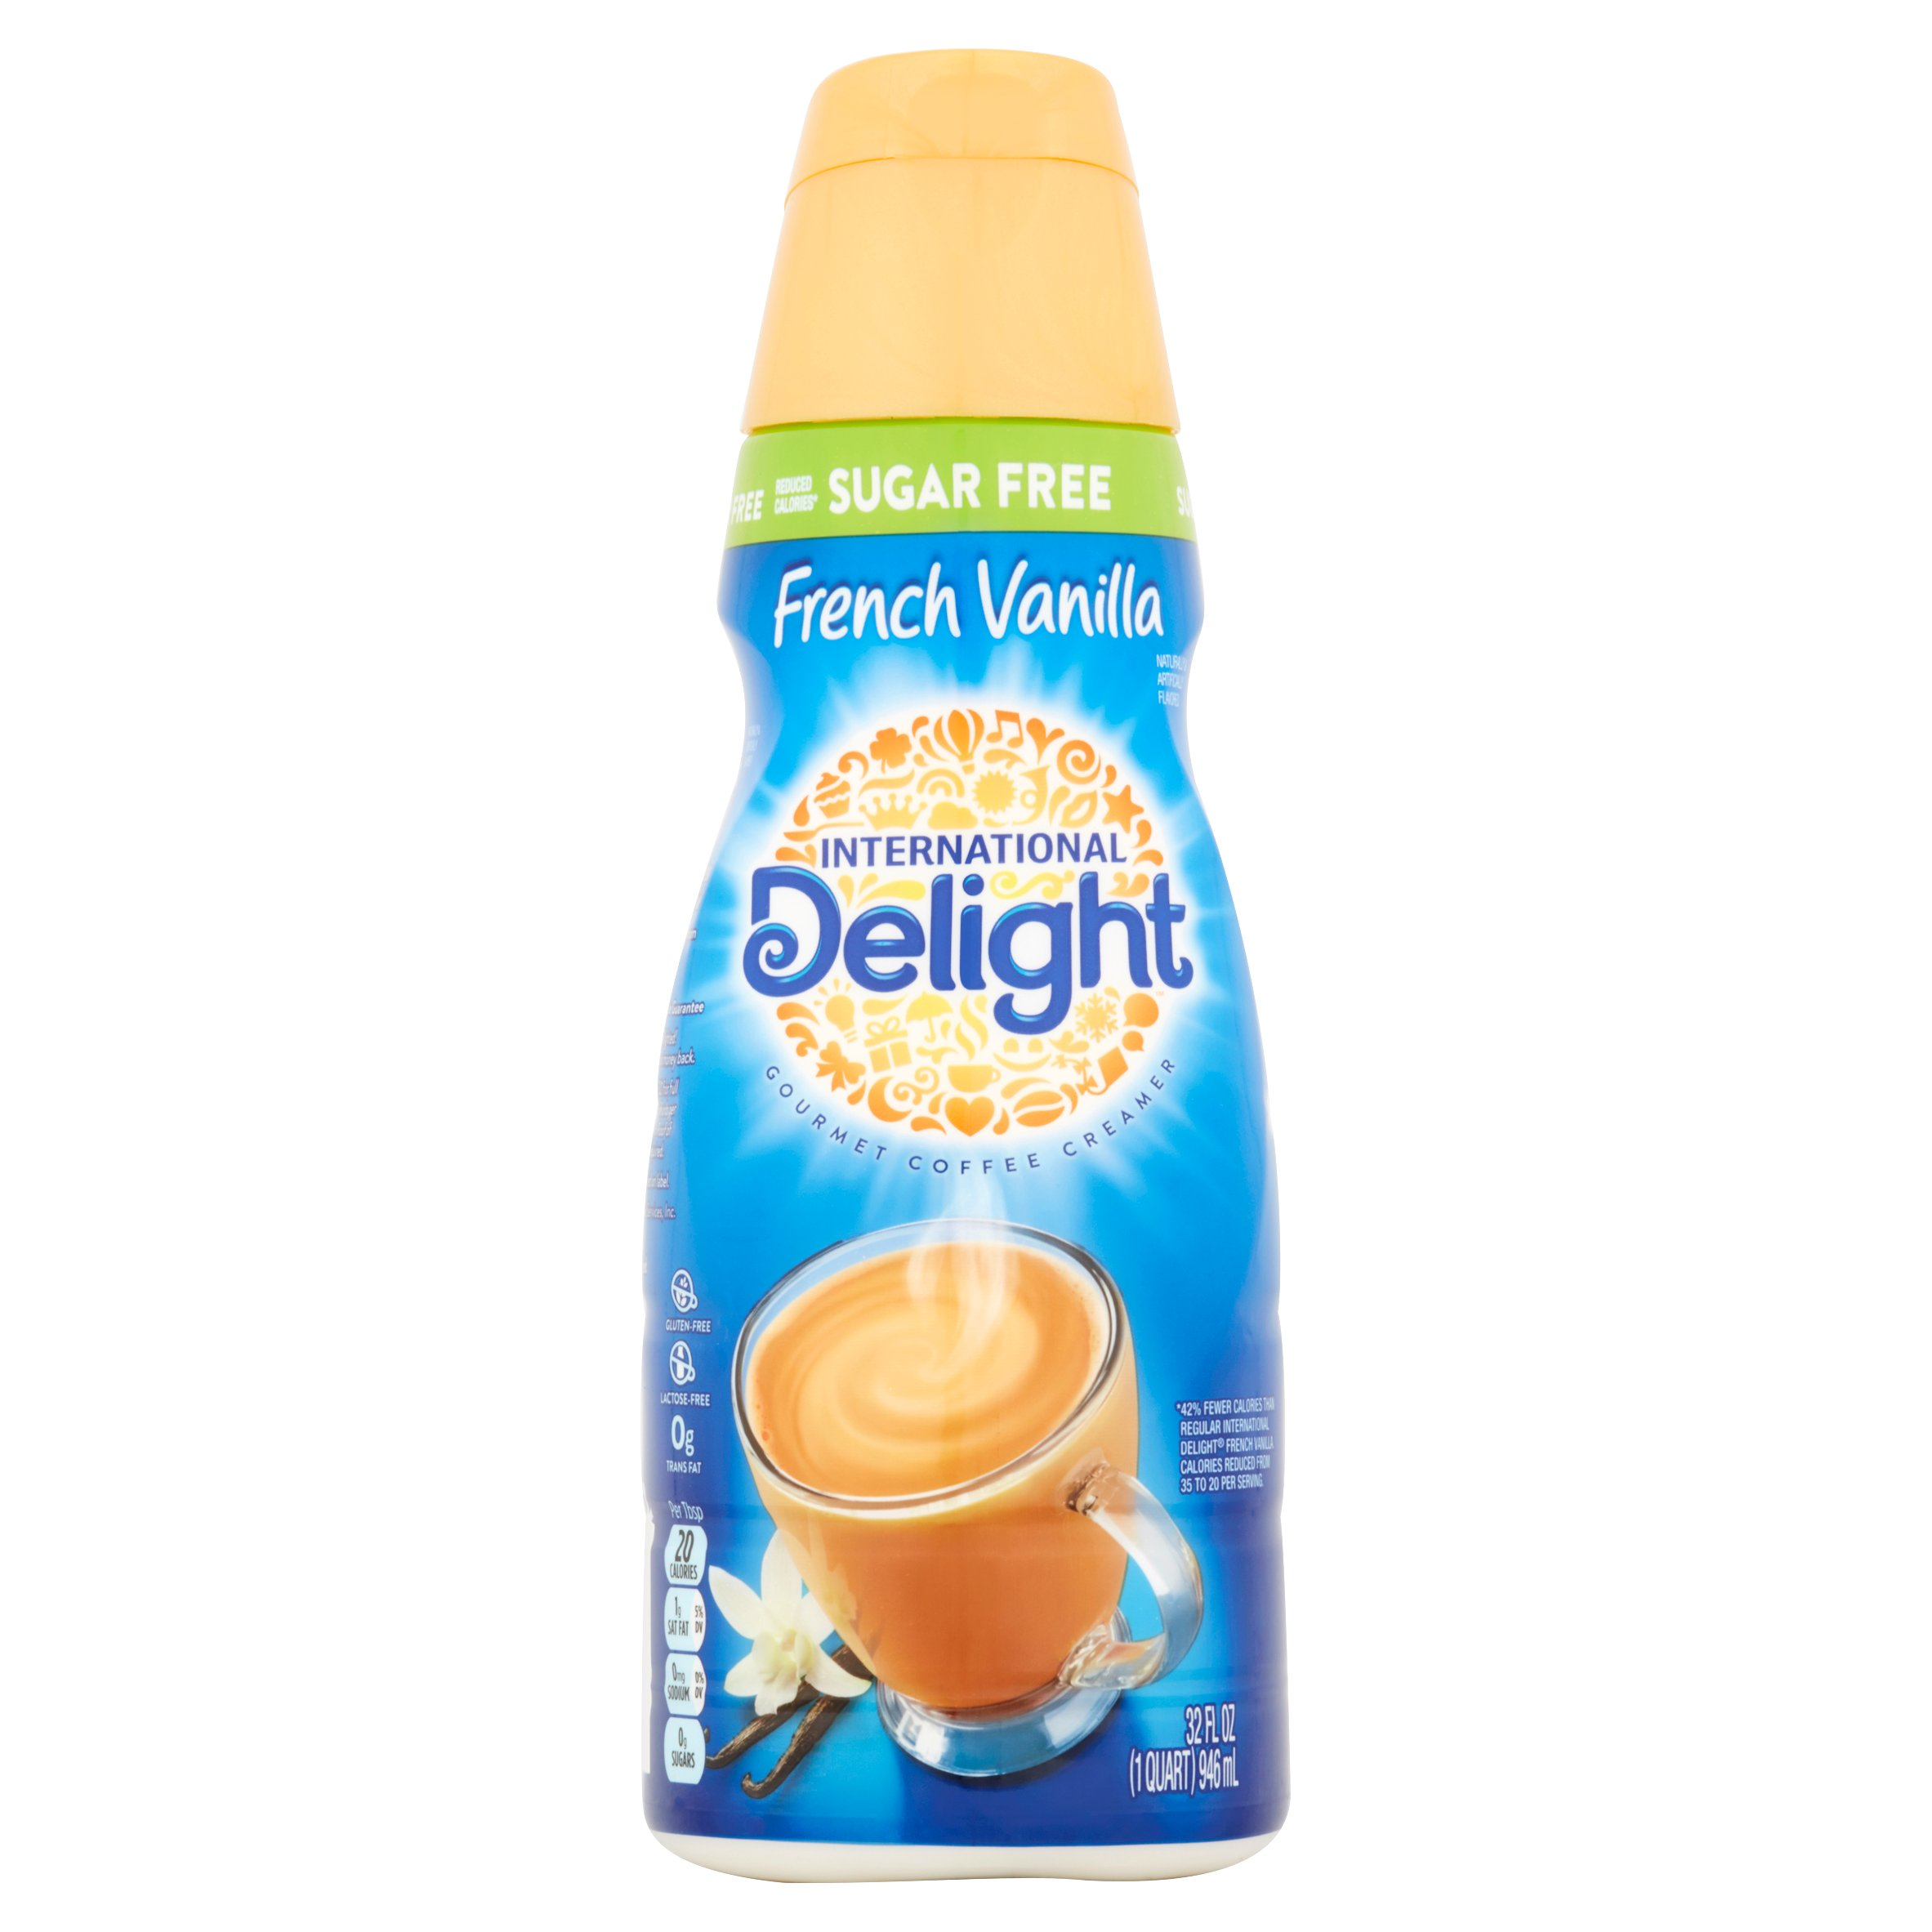 International Delight Sugar Free French Vanilla Gourmet Coffee Creamer, 32 oz